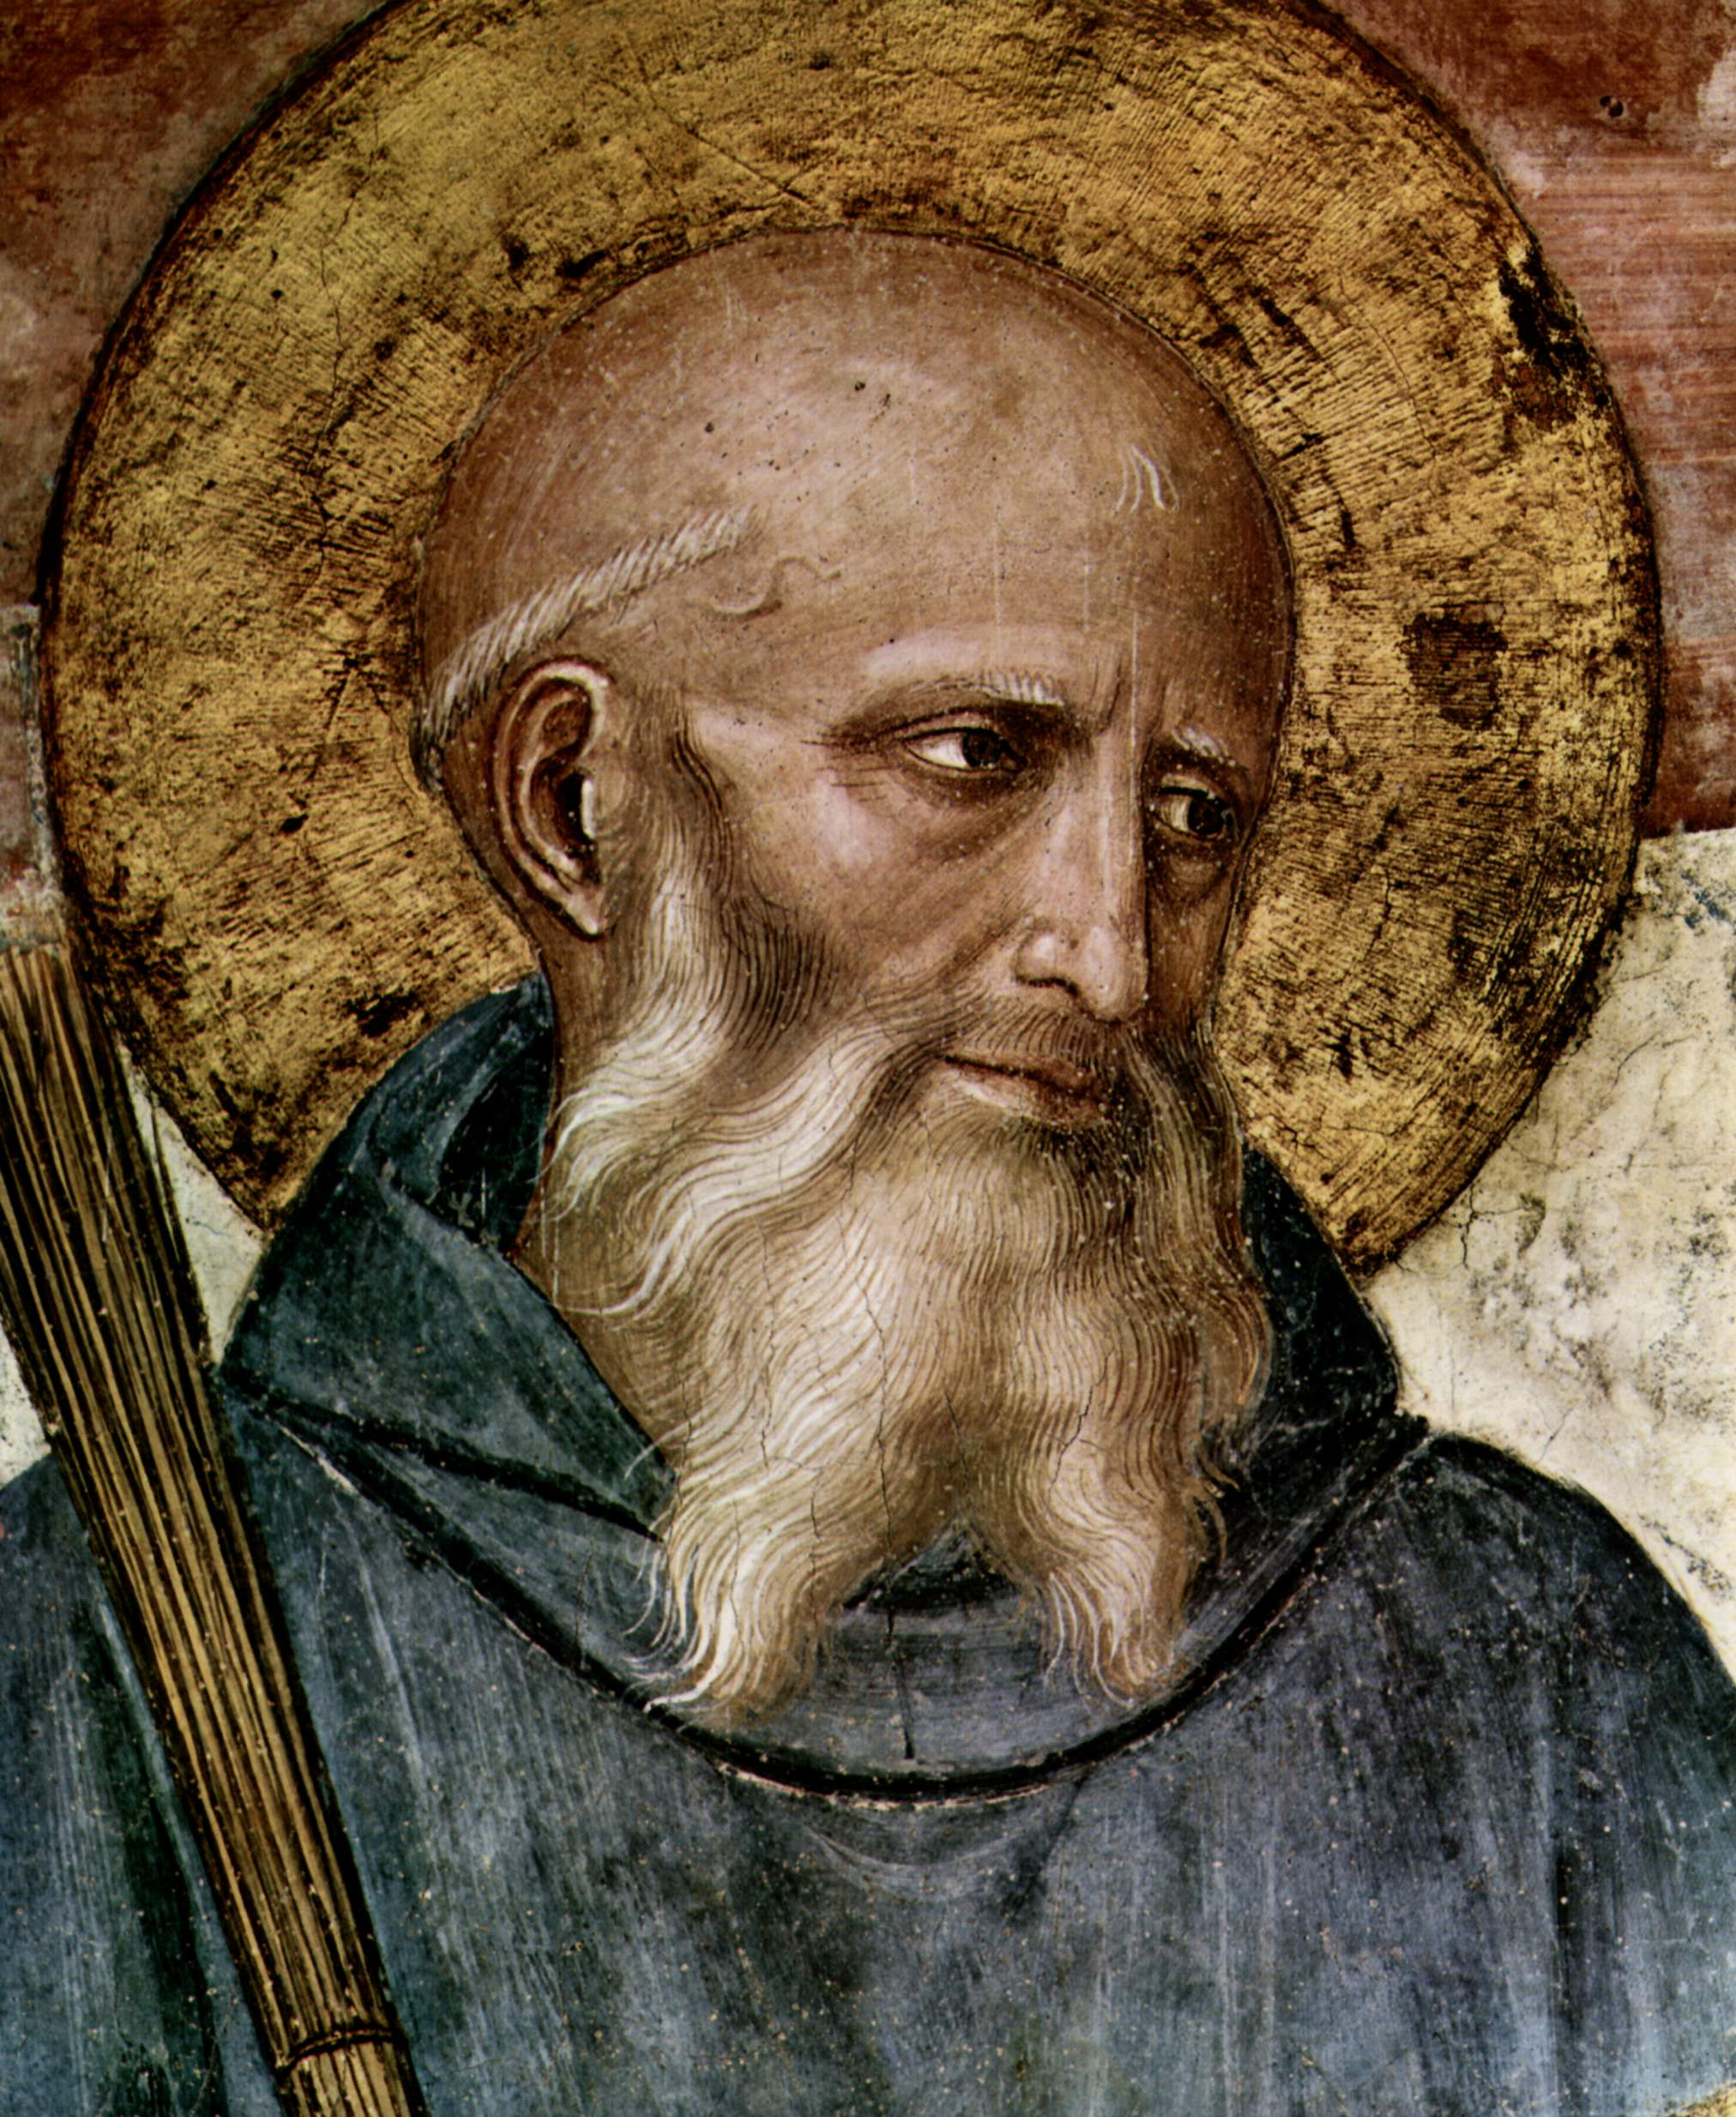 http://beingbob.files.wordpress.com/2009/07/saint-benedict-fra-angelico-031.jpg